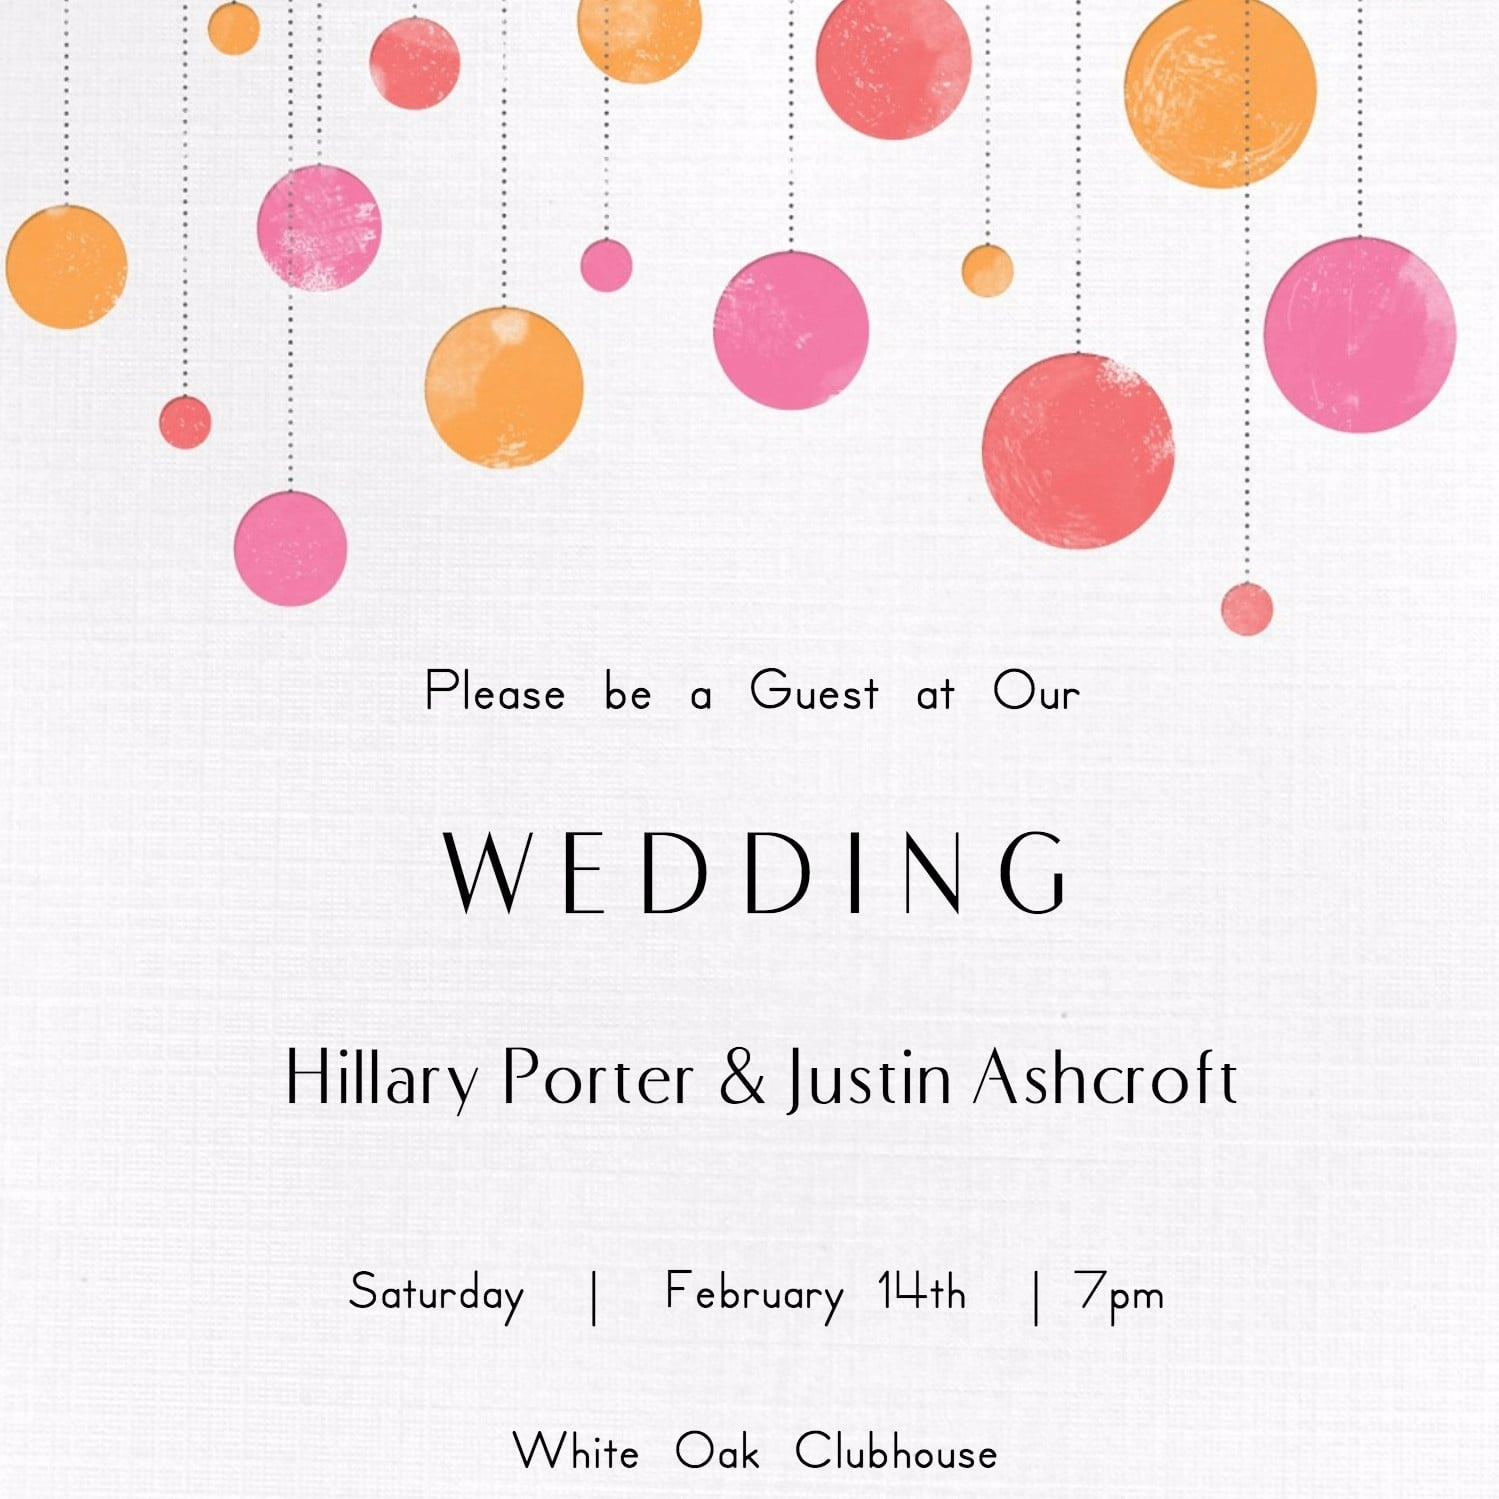 Free Printable Wedding Invitations | Popsugar Smart Living - Free Printable Wedding Cards